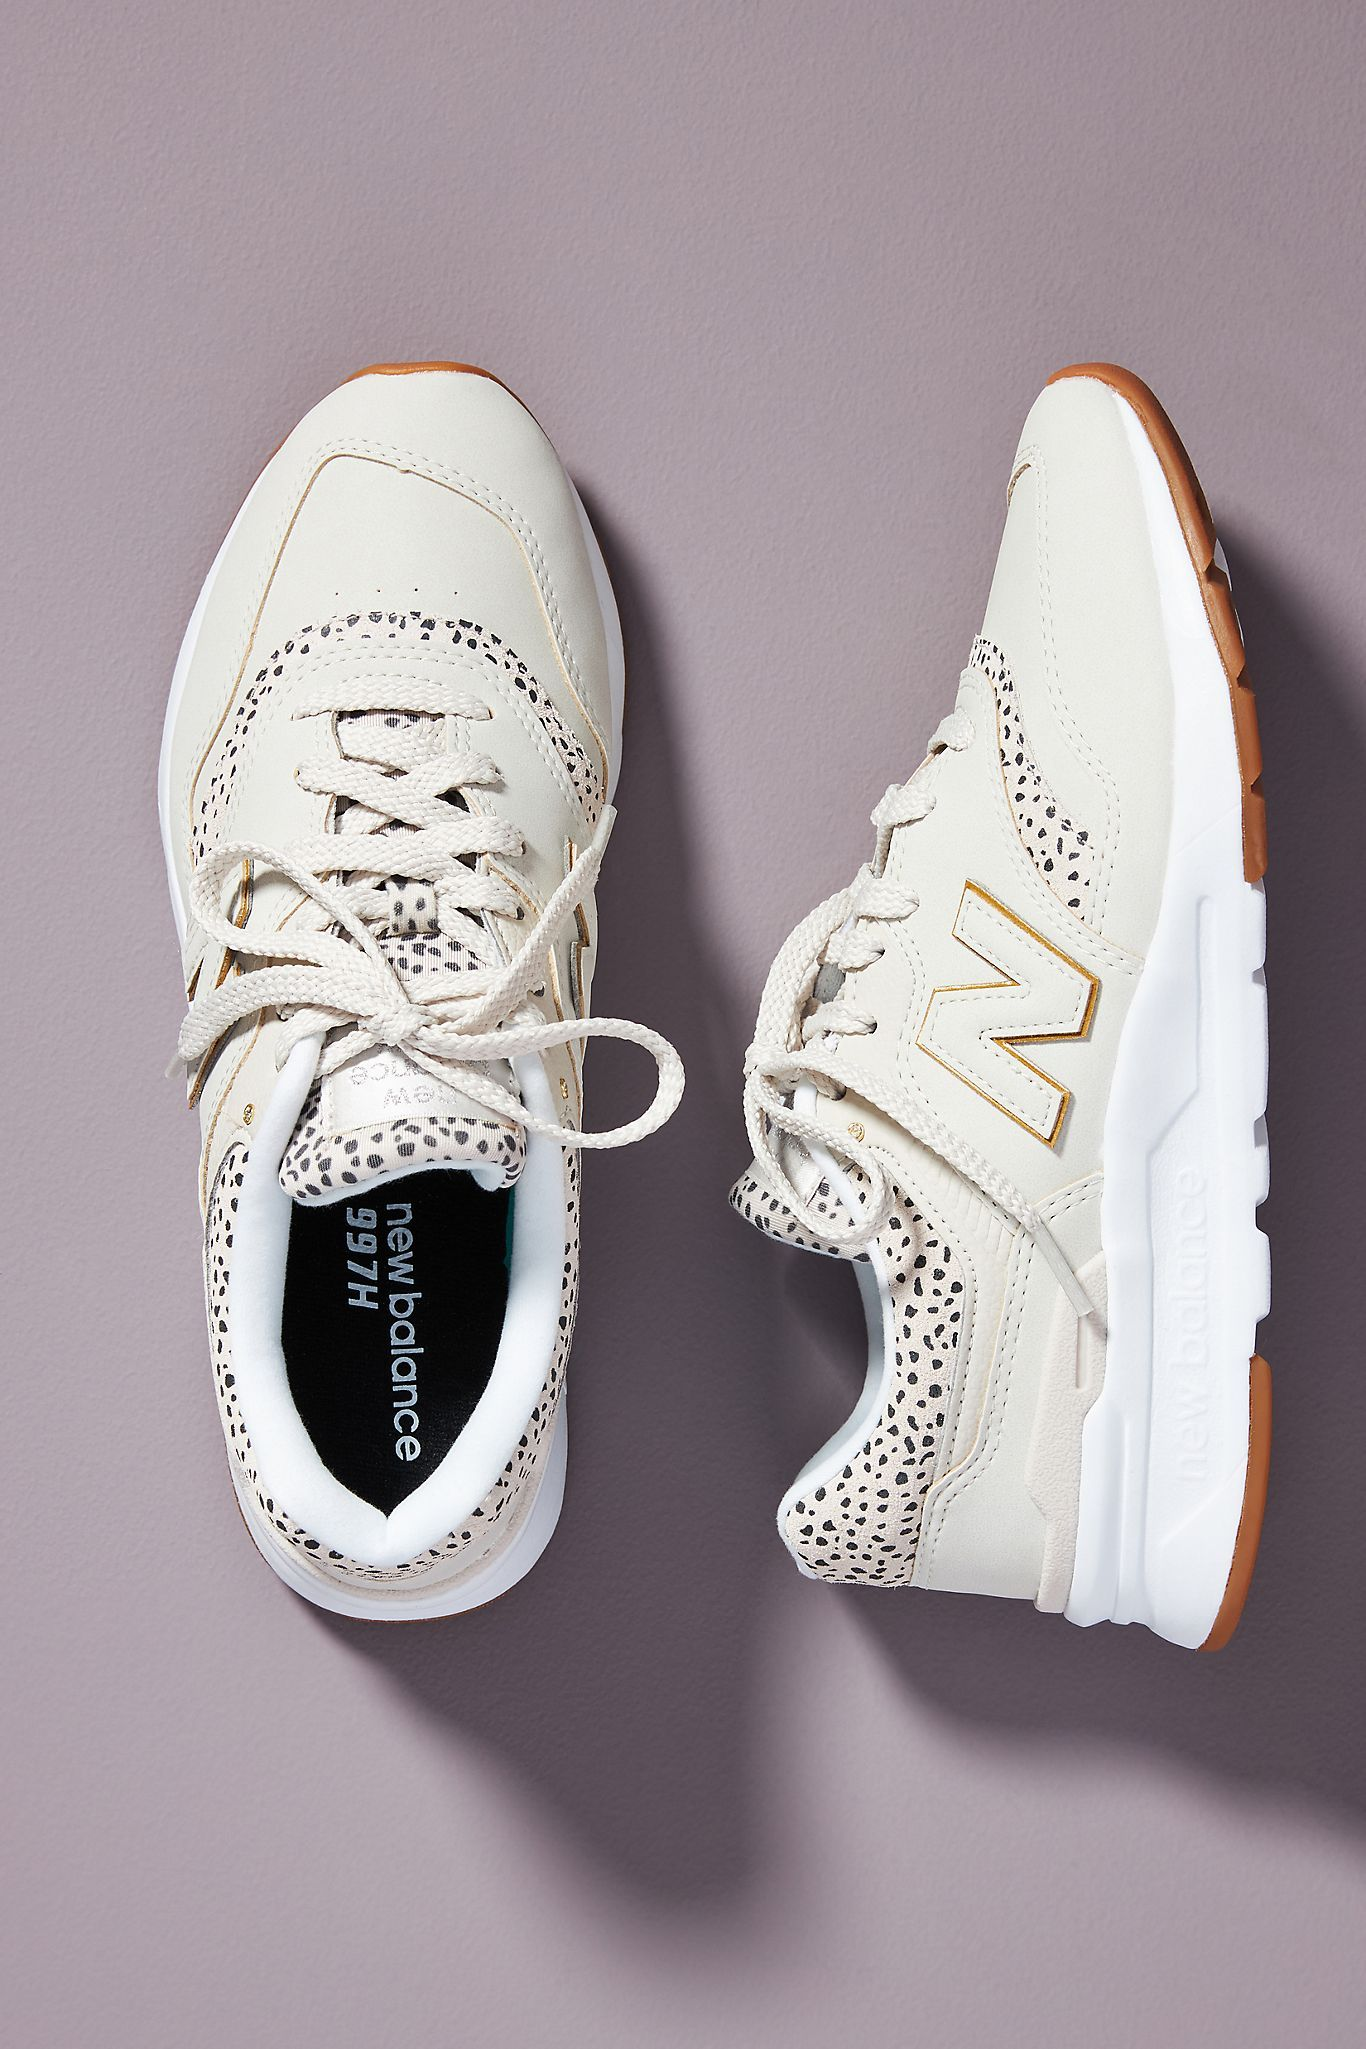 New Balance Spotted Trainer Sneakers